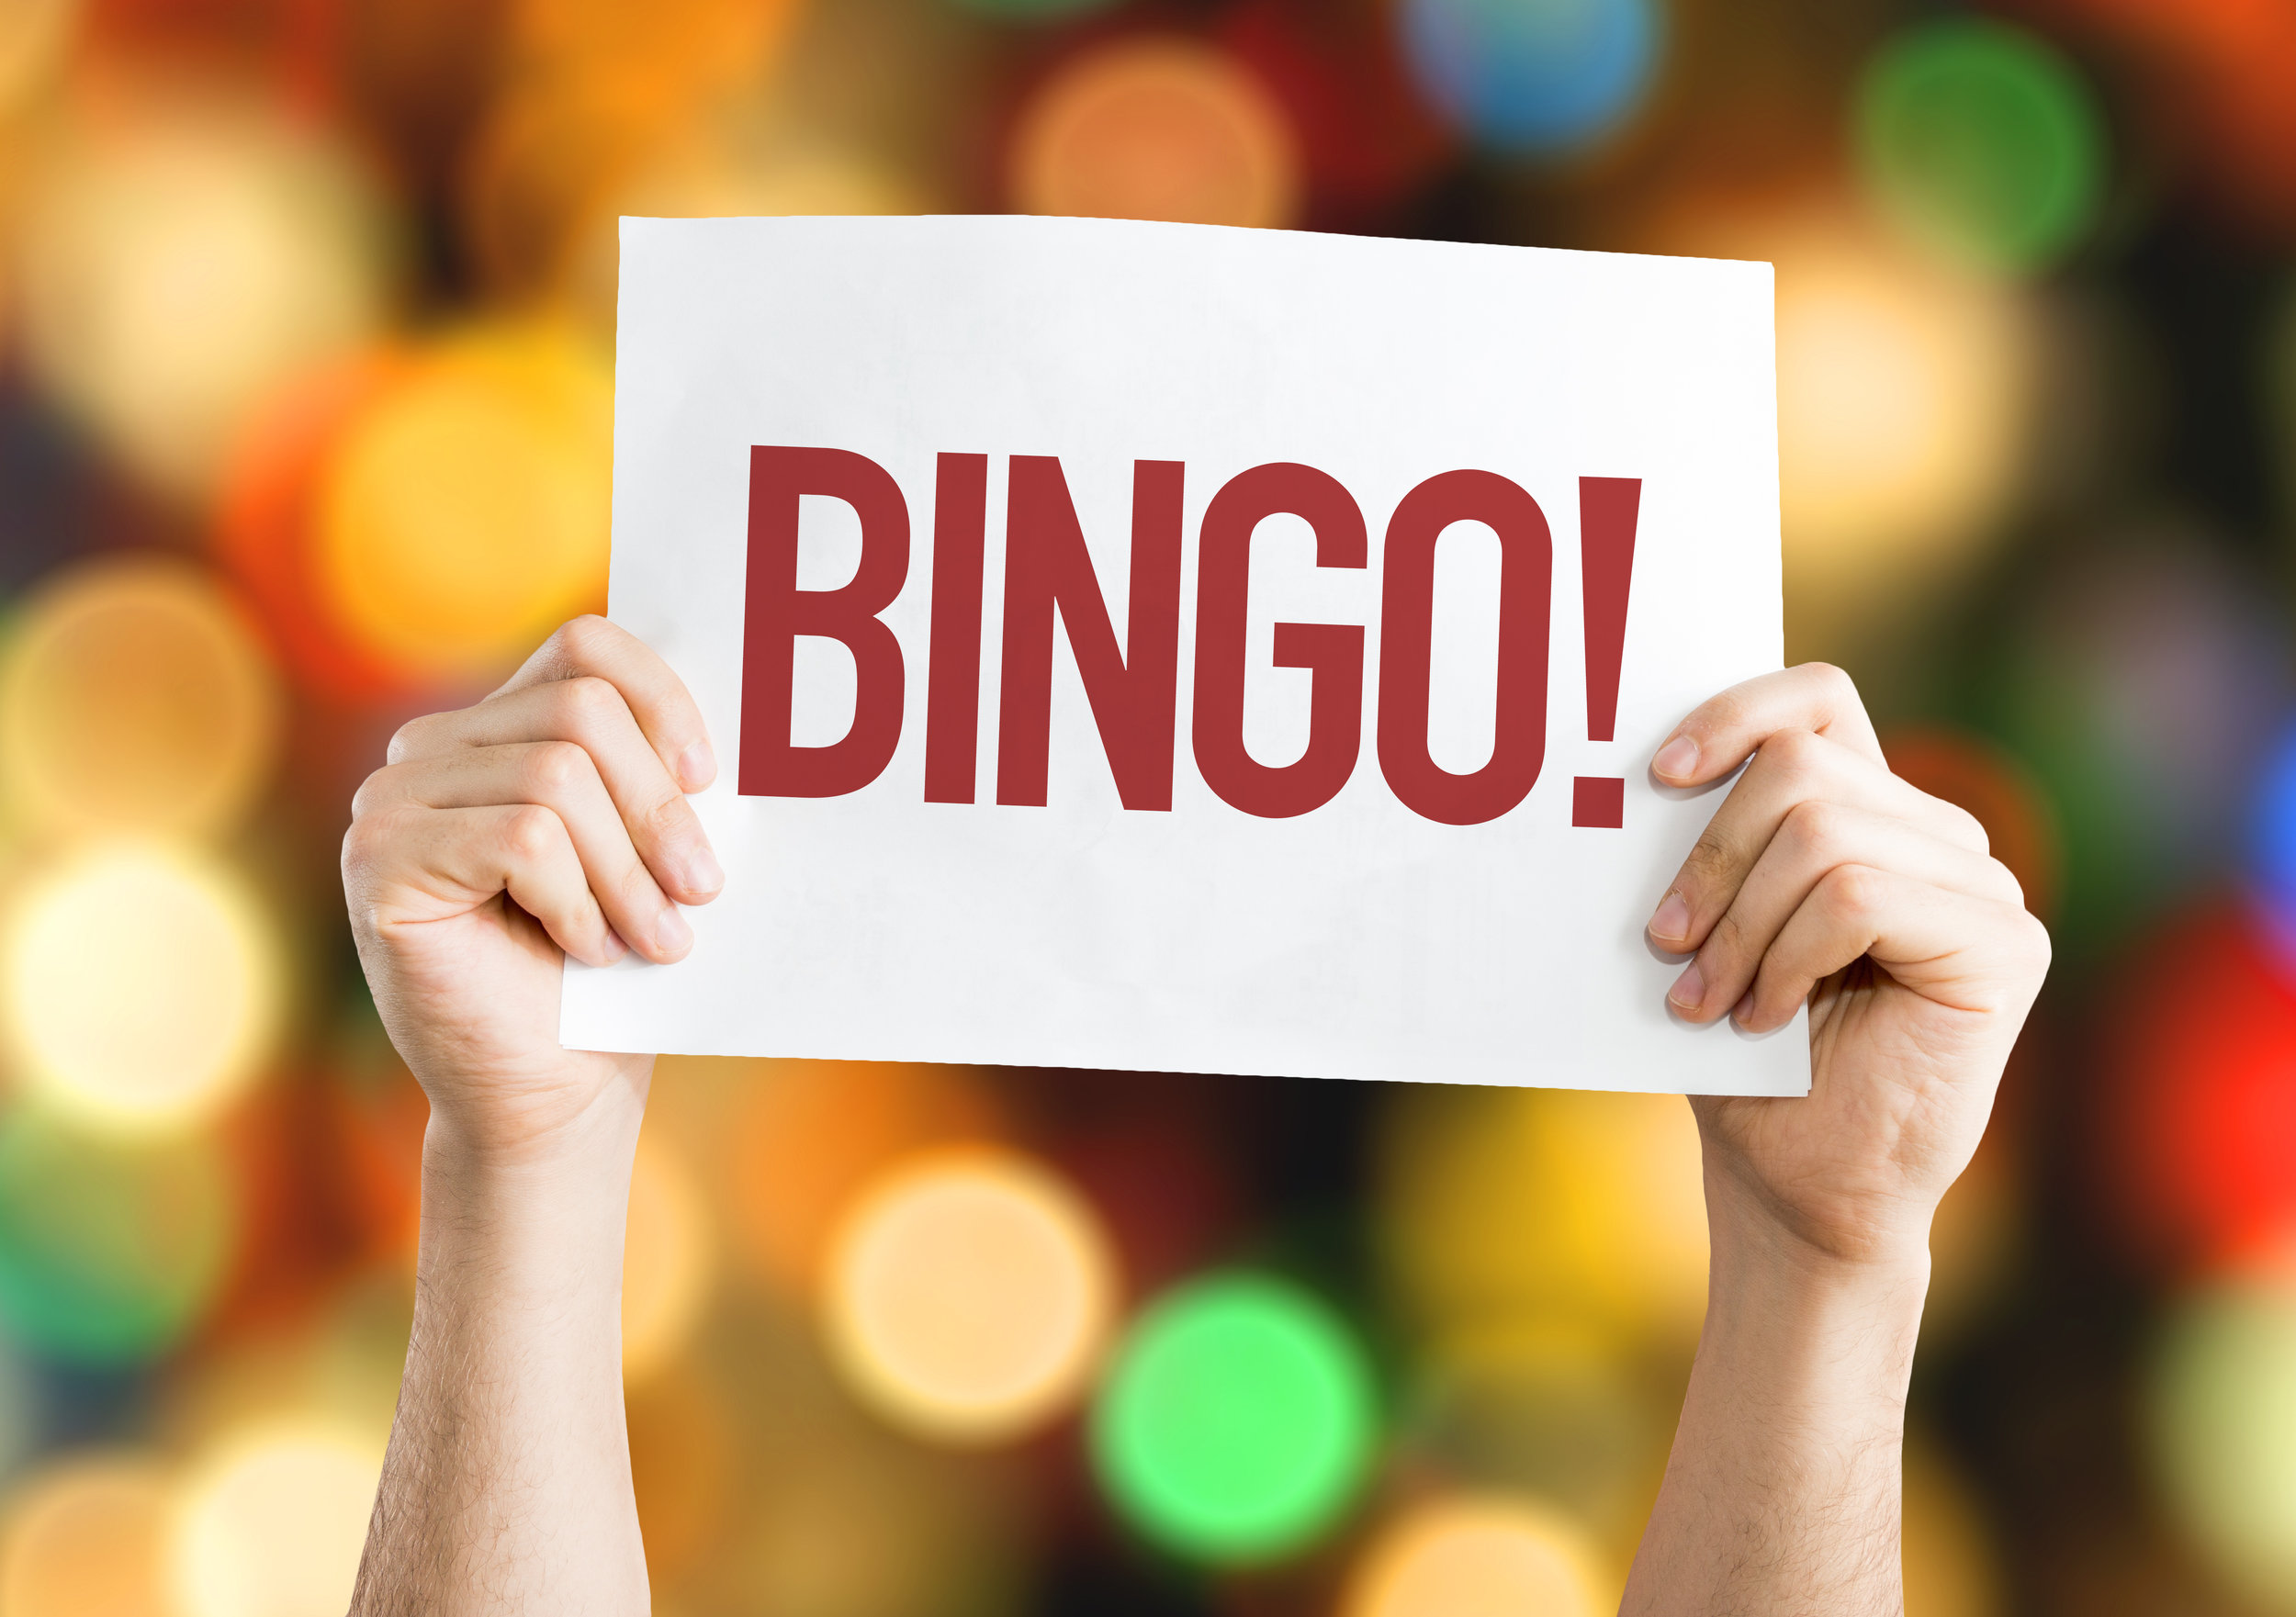 Bingo Every MondAy! - Starts at 7pm with Queen of Hearts drawing at 8:15pm.